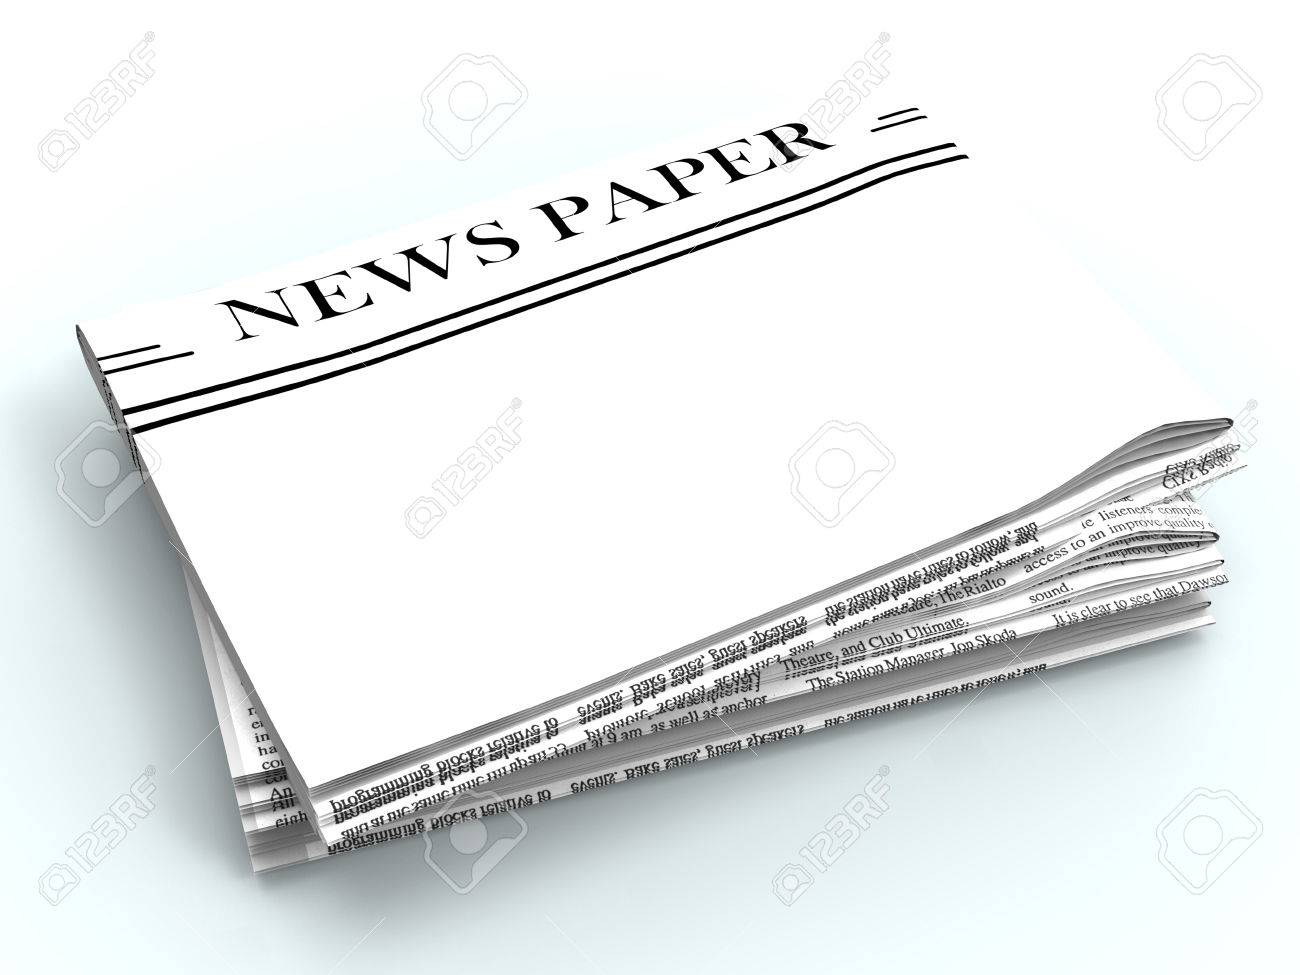 blank newspaper with copyspace showing news media headline space